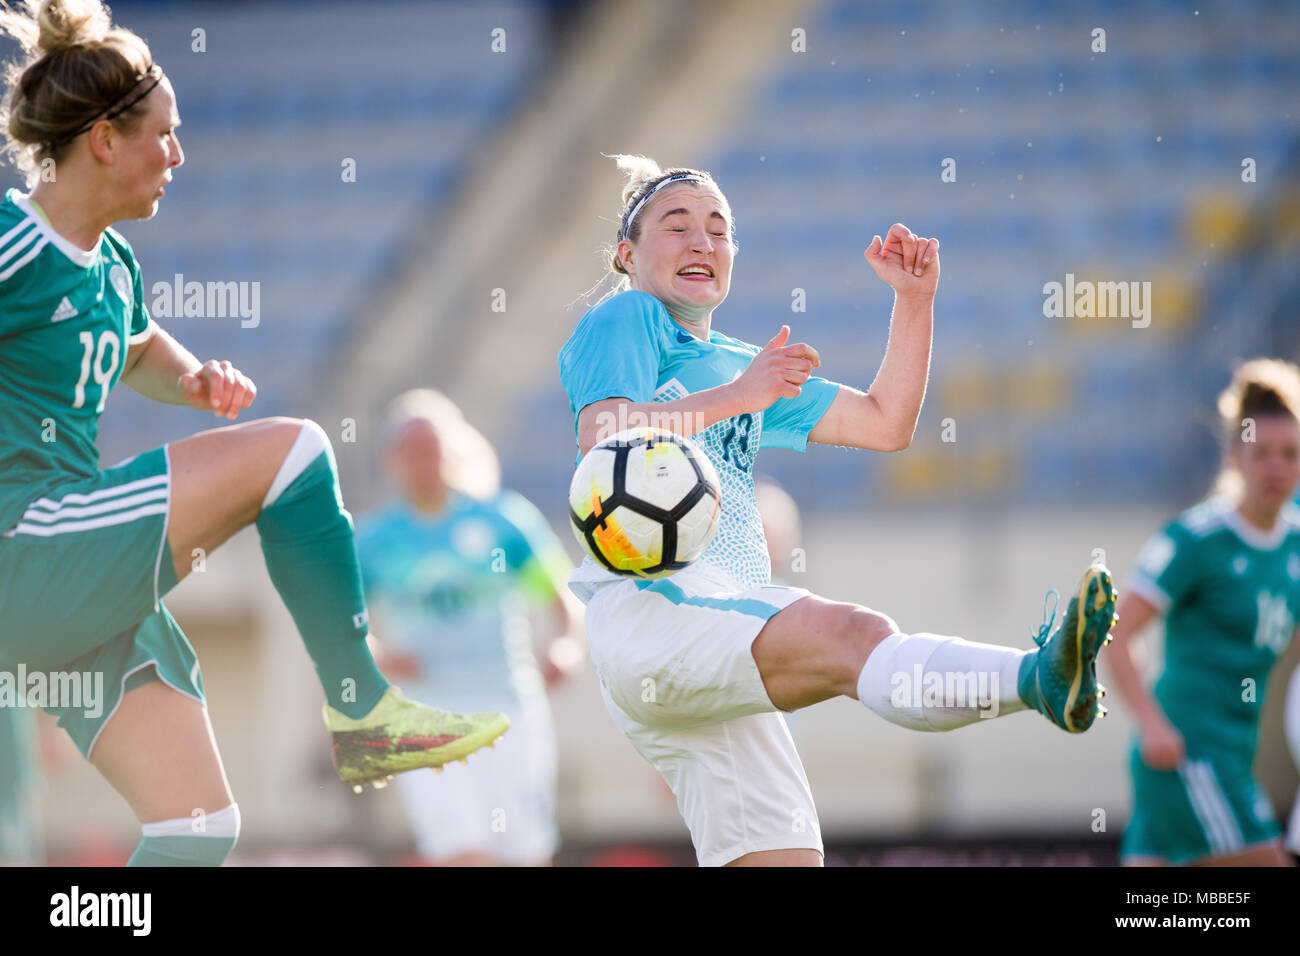 Simple Europe World Cup 2018 - 10-april-2018-slovenia-domzale-soccer-womens-world-cup-qualification-europe-group-stages-slovenia-vs-germany-germanys-svenja-huth-l-and-slovenias-lara-ivanusa-c-in-action-photo-sasa-pahic-szabodpa-MBBE5F  Perfect Image Reference_548349 .jpg